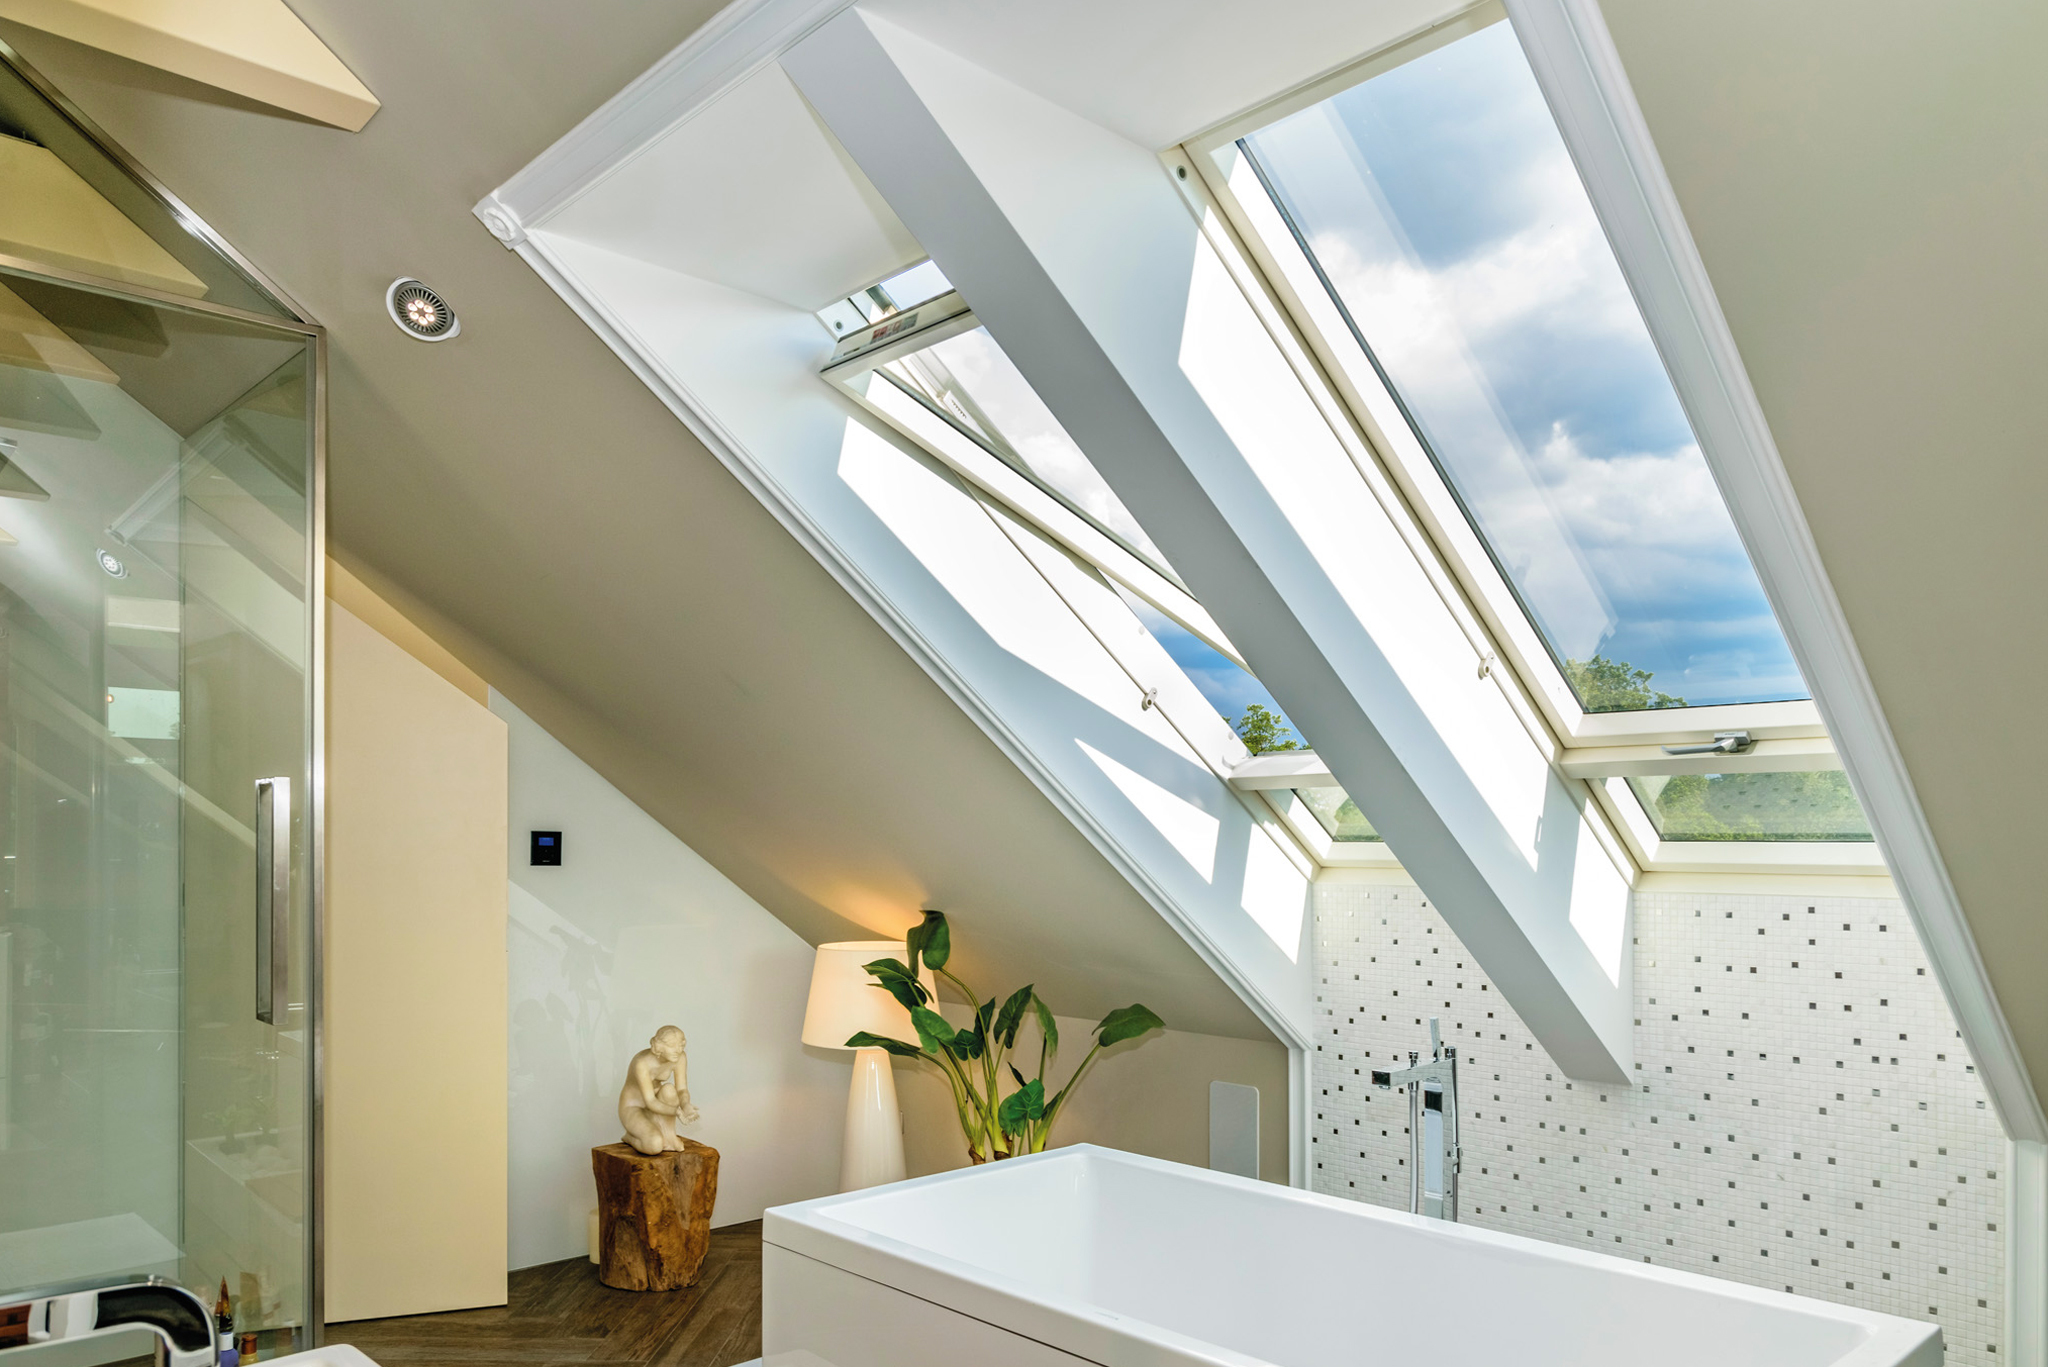 High pivot roof windows in bathroom